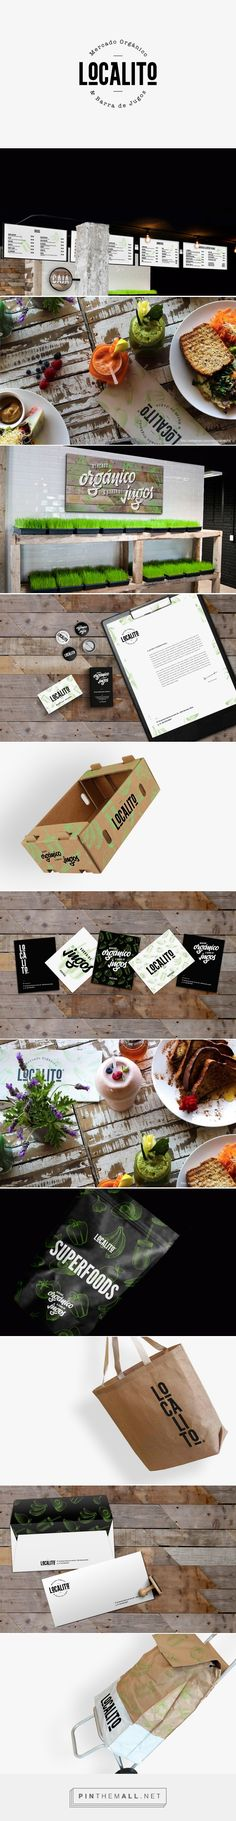 LOCALITO on Behance | Fivestar Branding – Design and Branding Agency & Inspiration Gallery